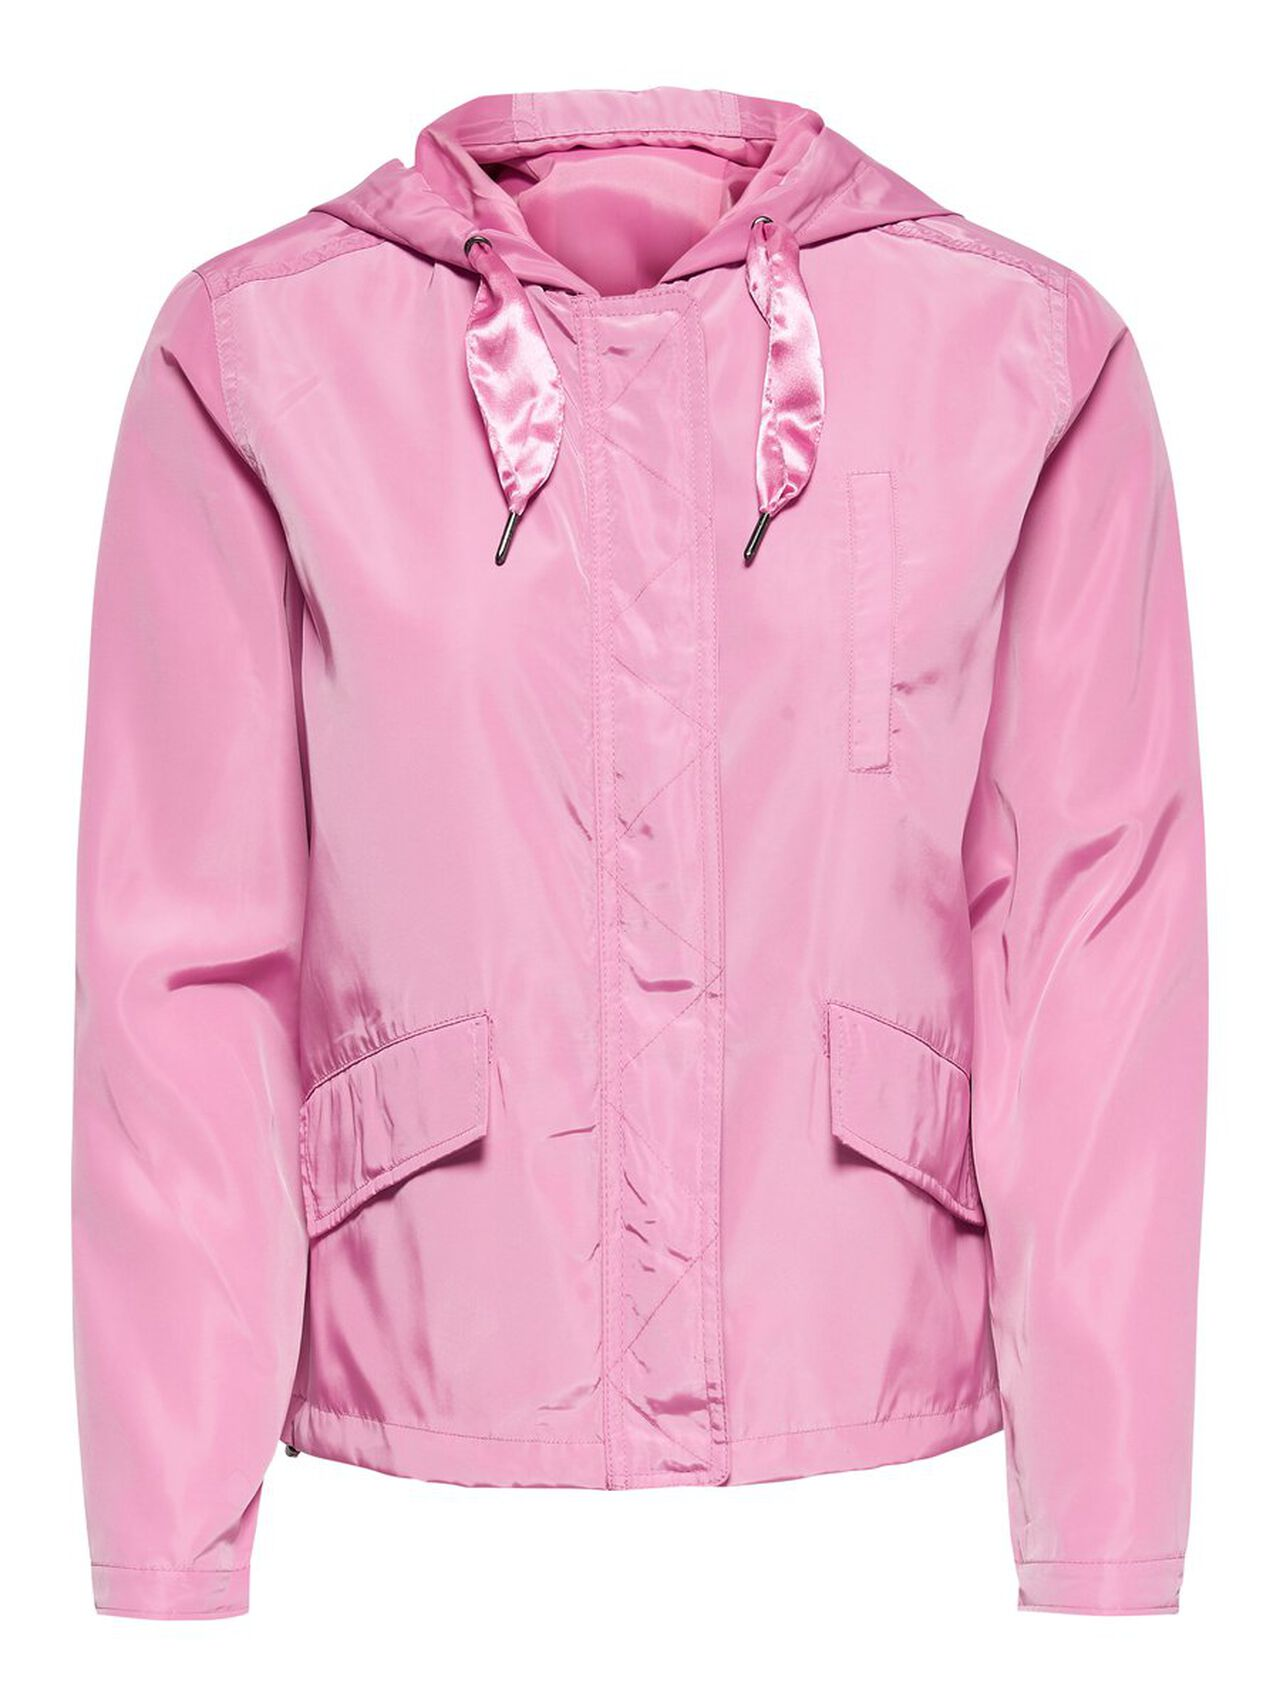 ONLY Short Parka Coat Women Pink